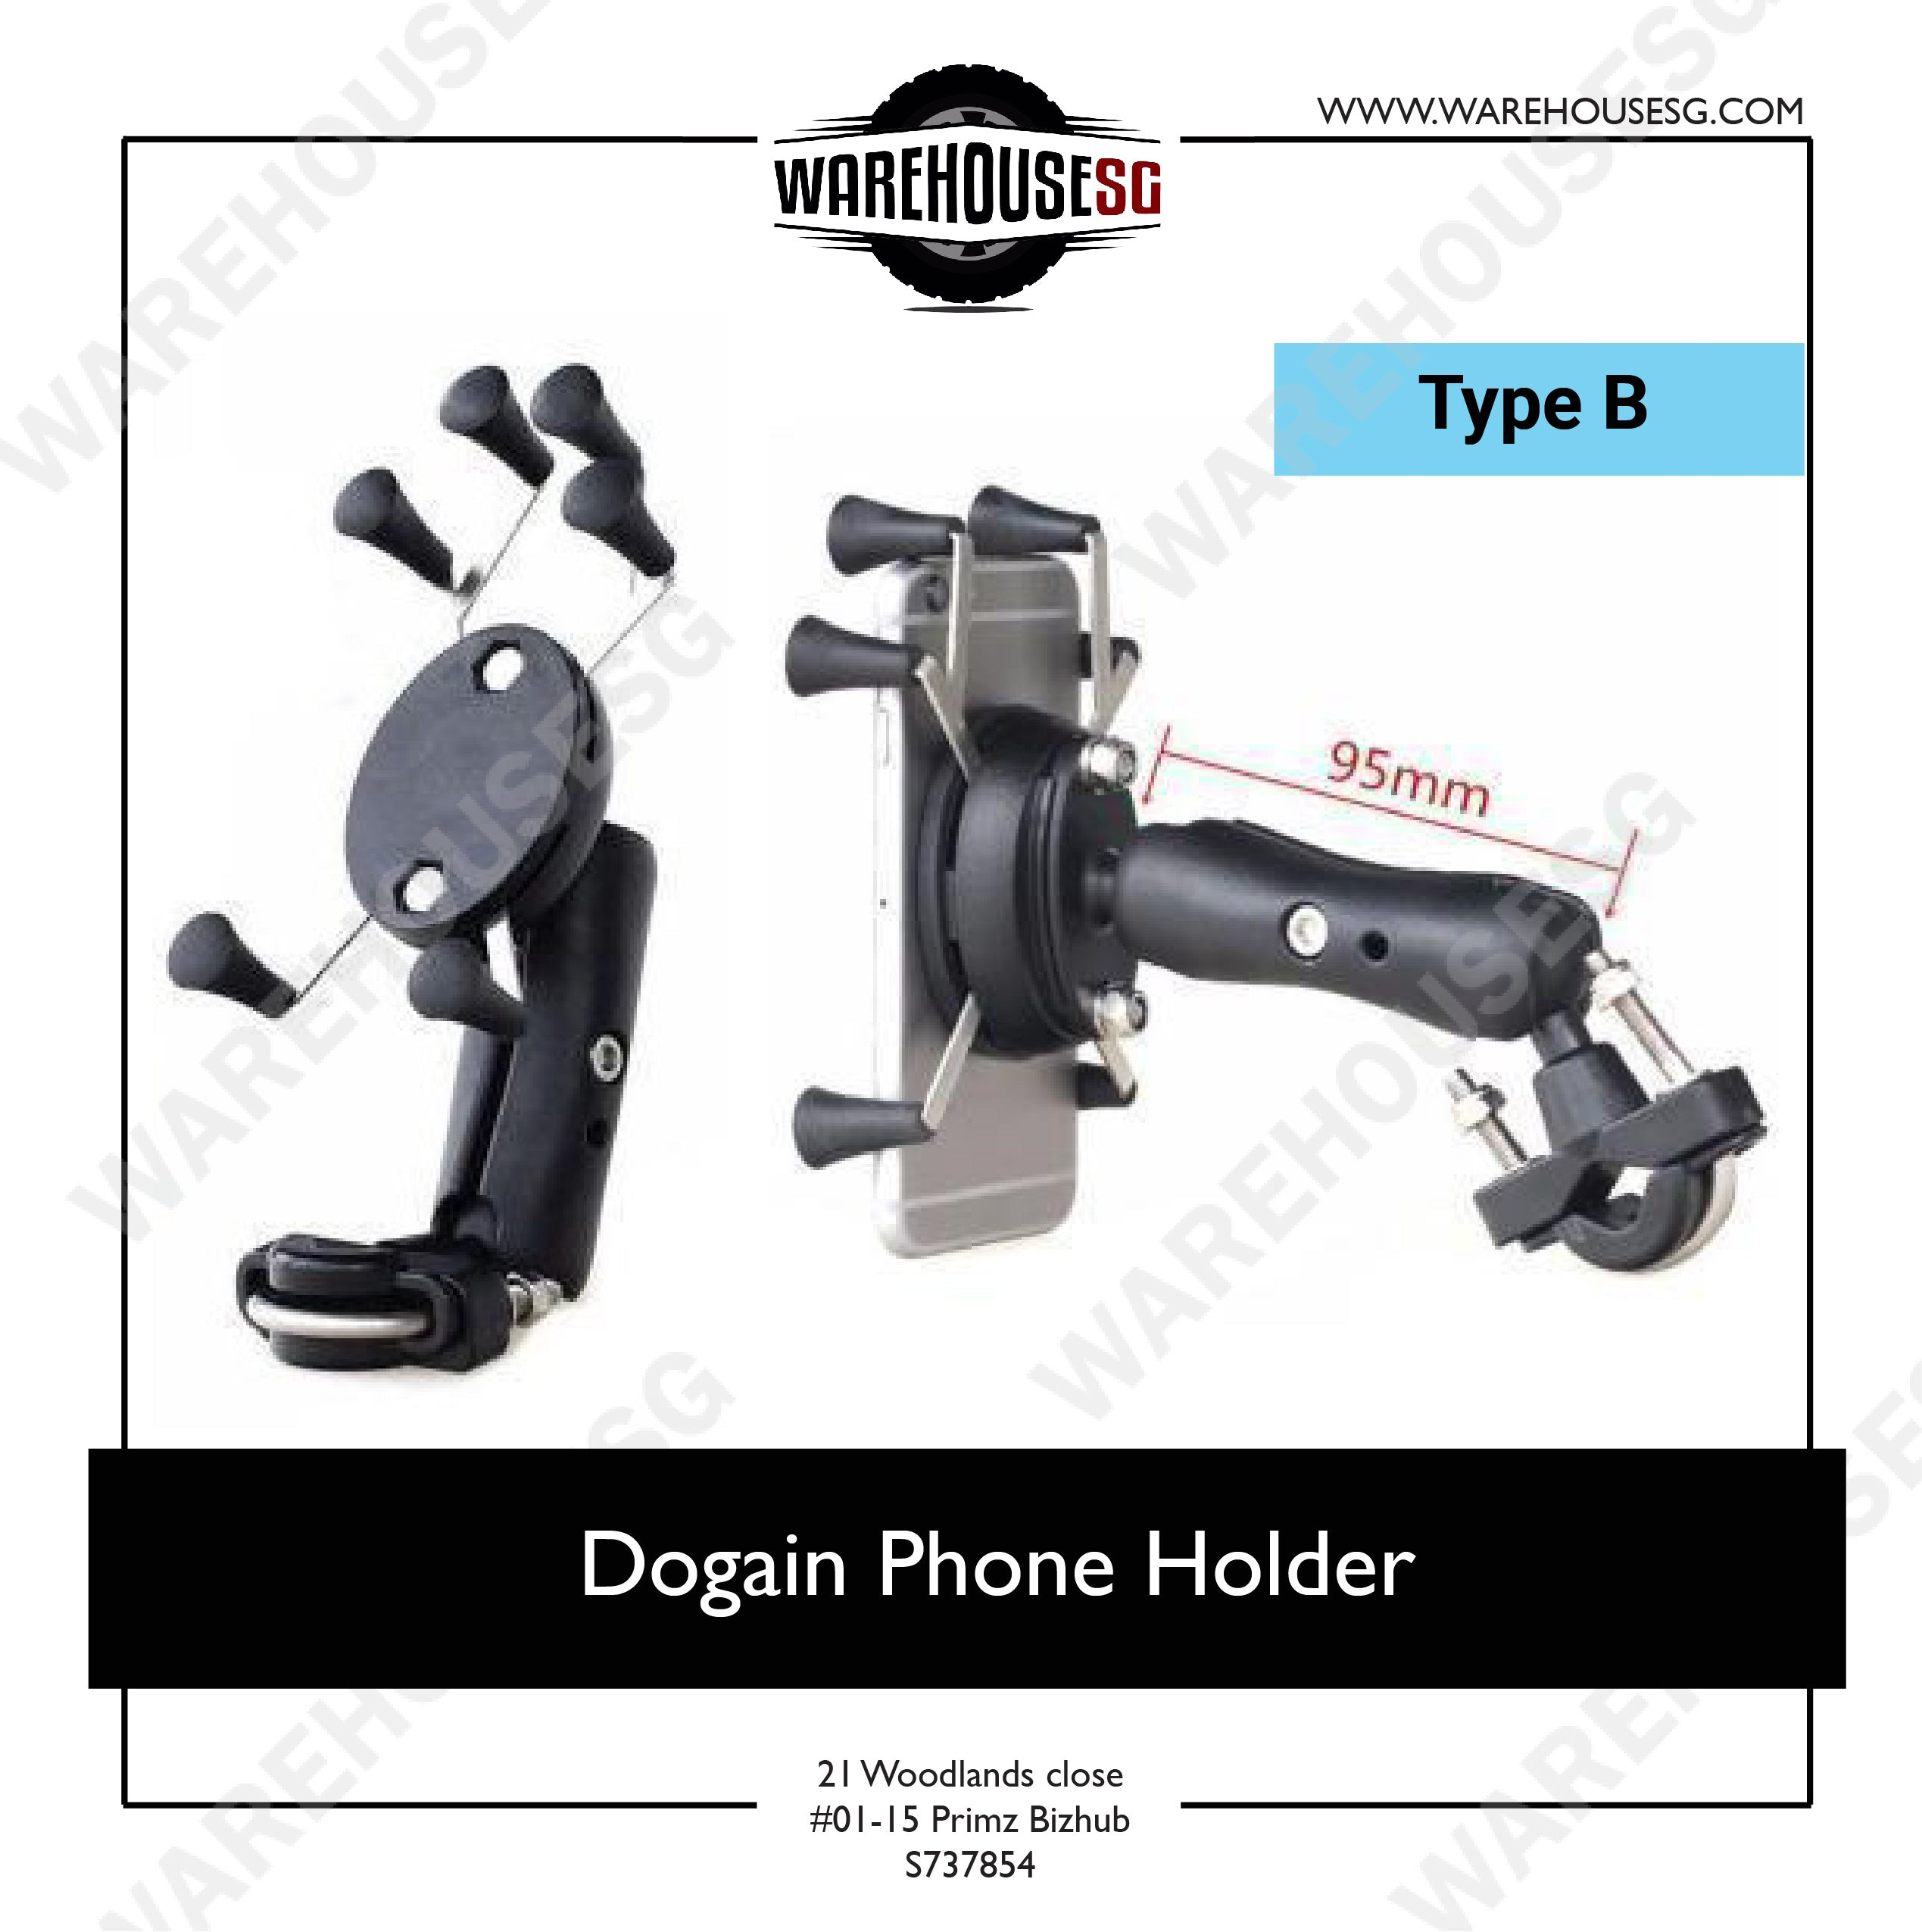 DOGAIN X-Grip Phone Holder for Motorbike / E-Scooter